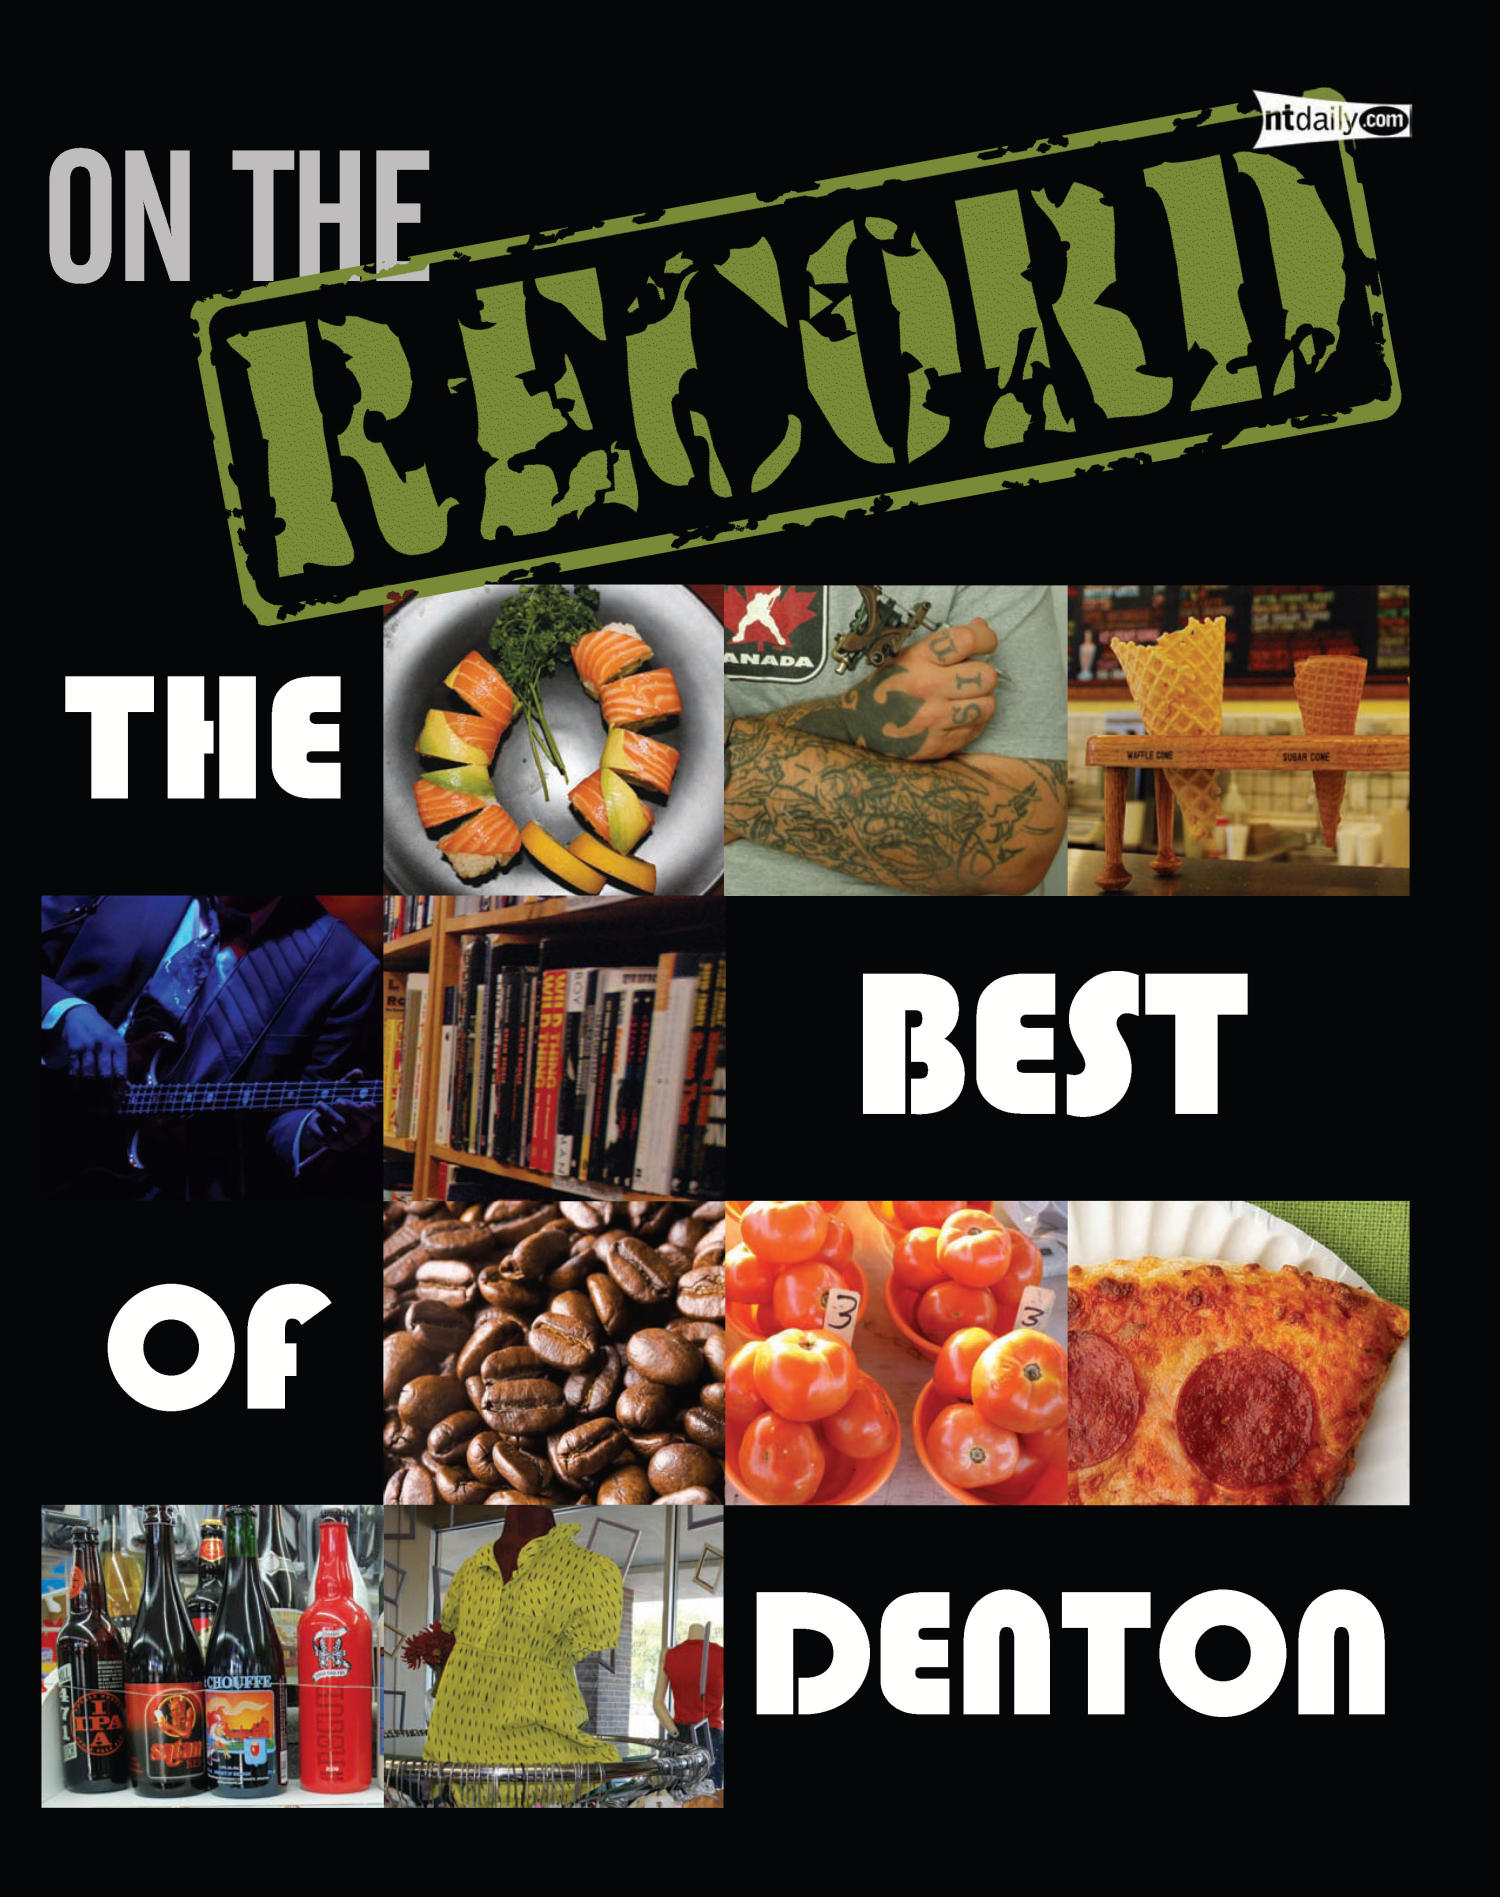 On The Record: The Best Of Denton, August 14, 2009                                                                                                      [Sequence #]: 1 of 60